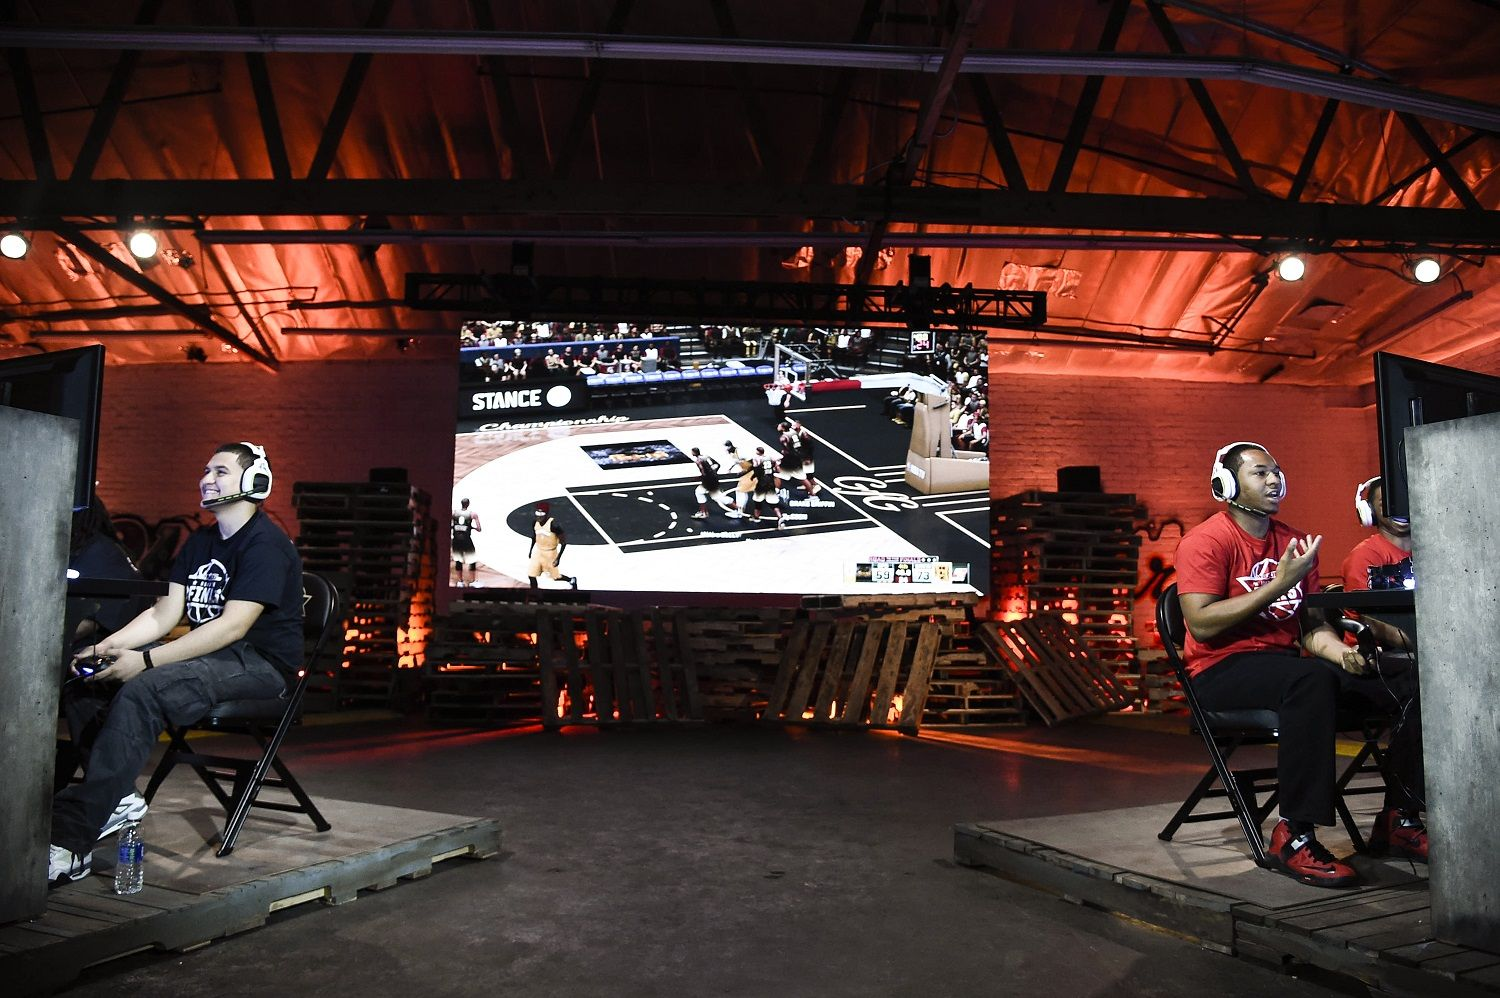 IMAGE DISTRIBUTED FOR NBA 2K - Team GFG, right, and team Drewkerbockers, left, seen at the NBA 2K16 Road to the Finals championship event on Wednesday, June 1, 2016, in Los Angeles. Two teams of gamers go head to head during a competition that merges simulation basketball with eSports for a shot at $250,000 and a trip to the 2015-2016 NBA Finals. (Photo by Dan Steinberg/Invision for NBA 2K/AP Images)